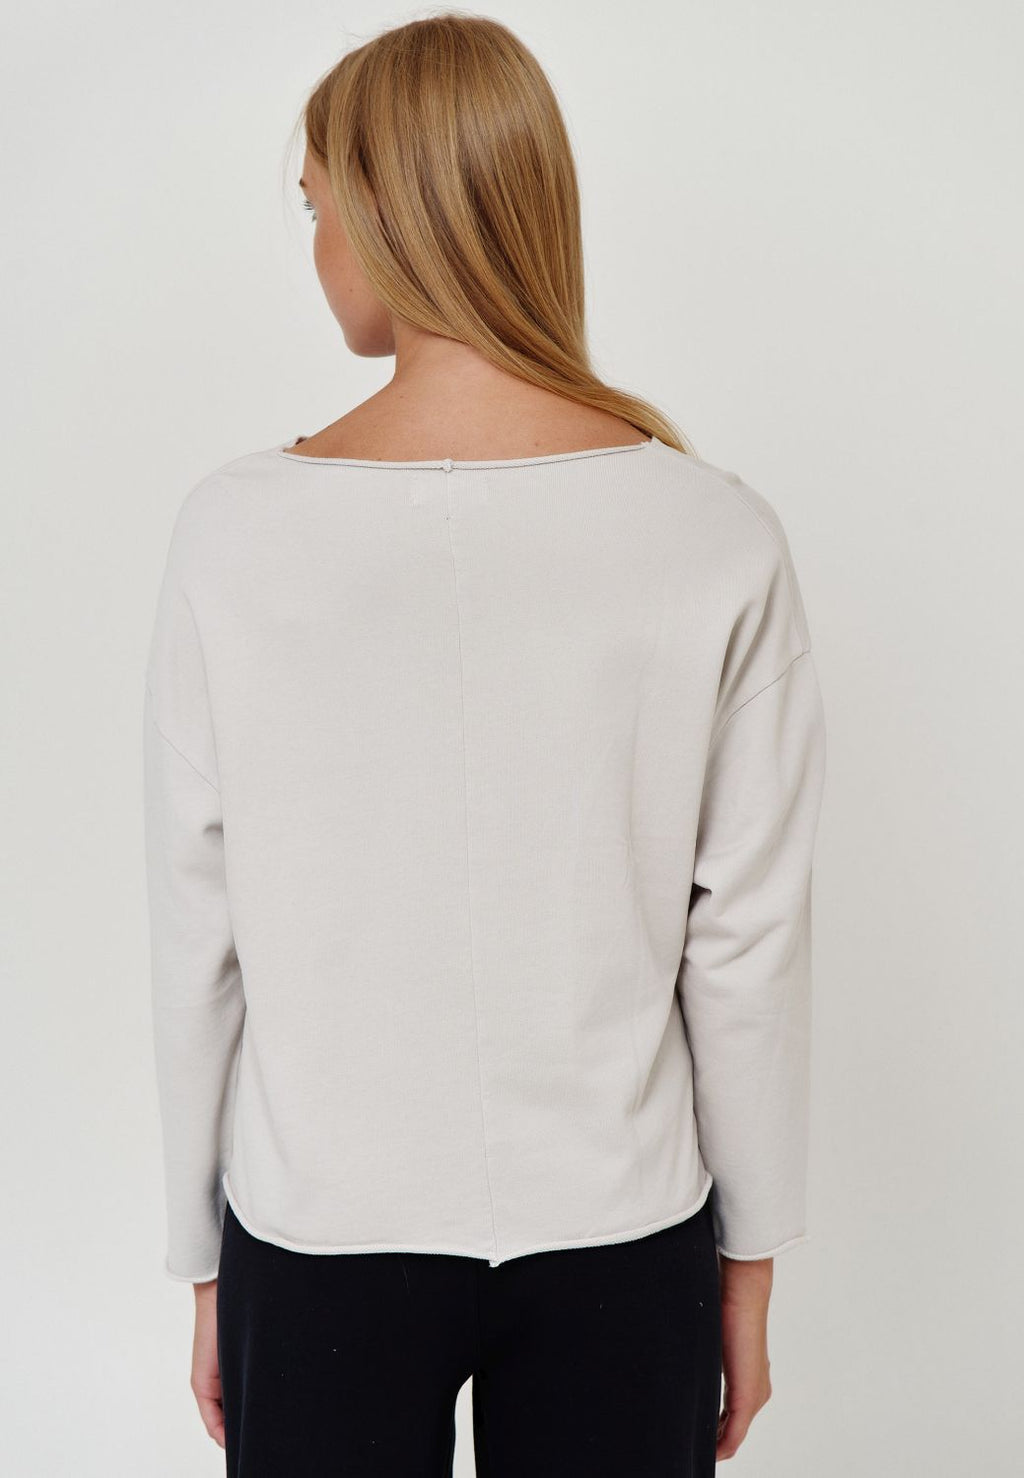 OTTILIA Sweatshirt - COTTON CANDY